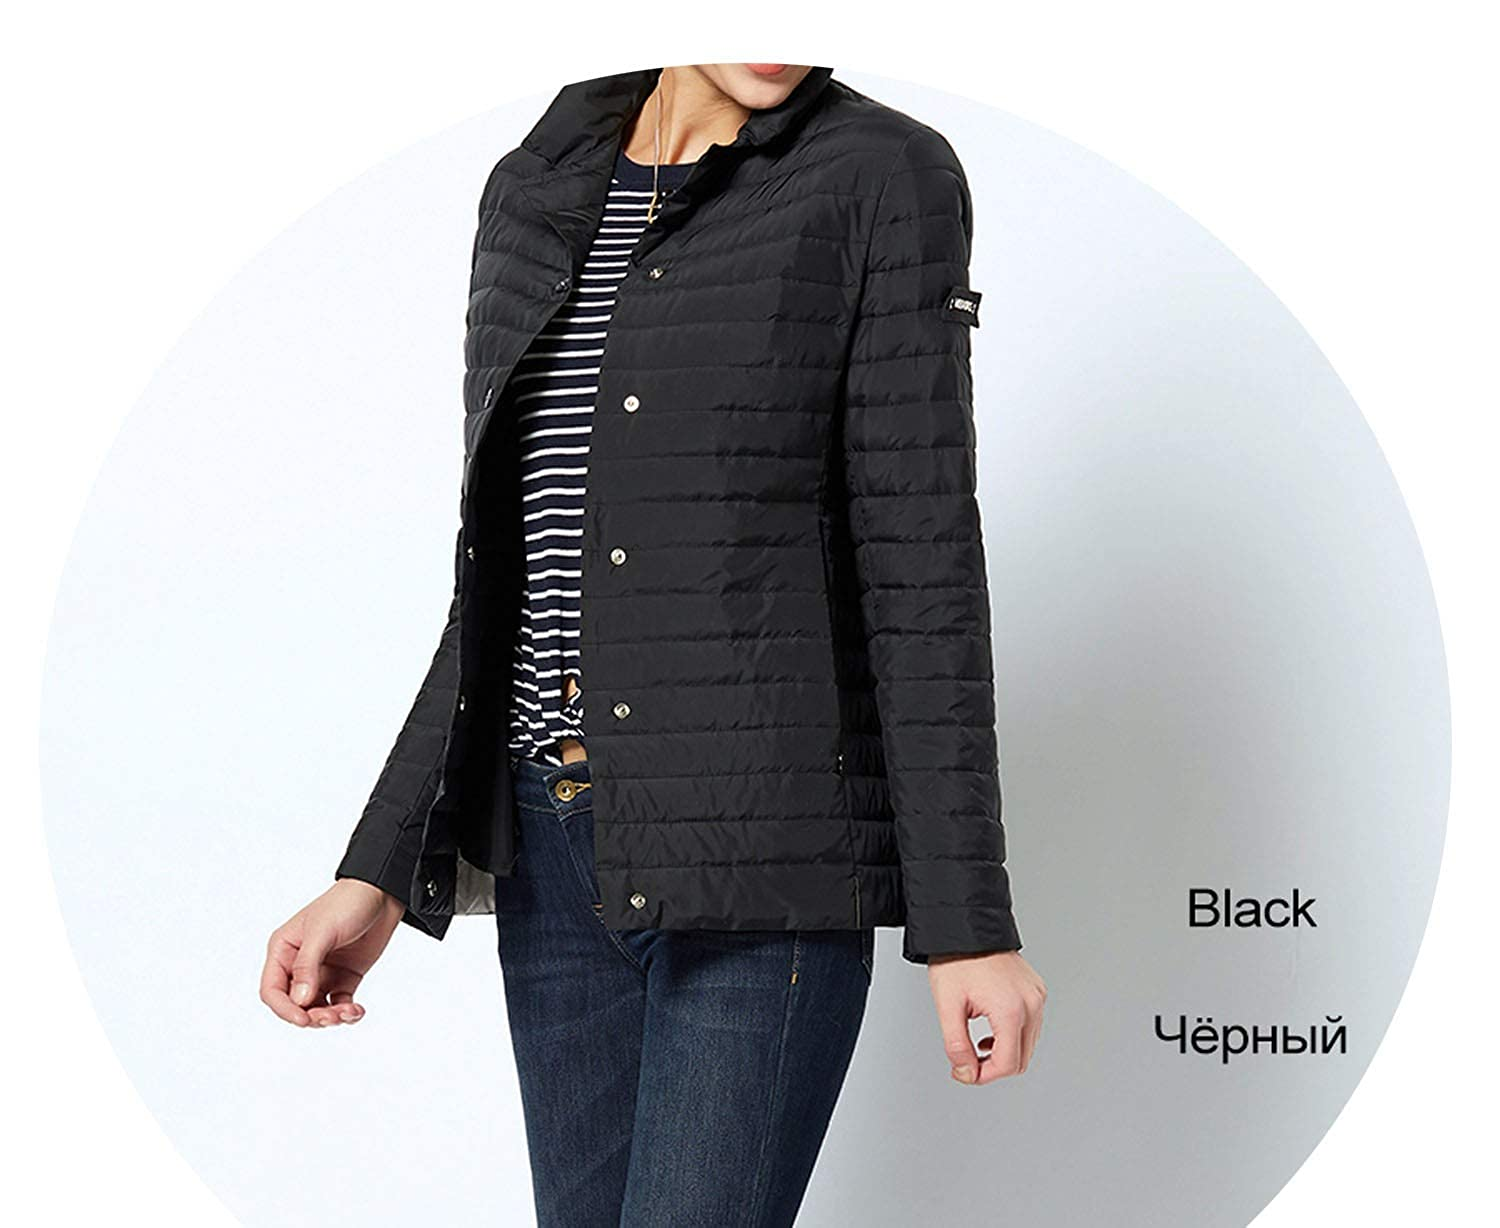 201 Black Windproof Women's Parka Coat Jacket Coat Womens Quilted Coat